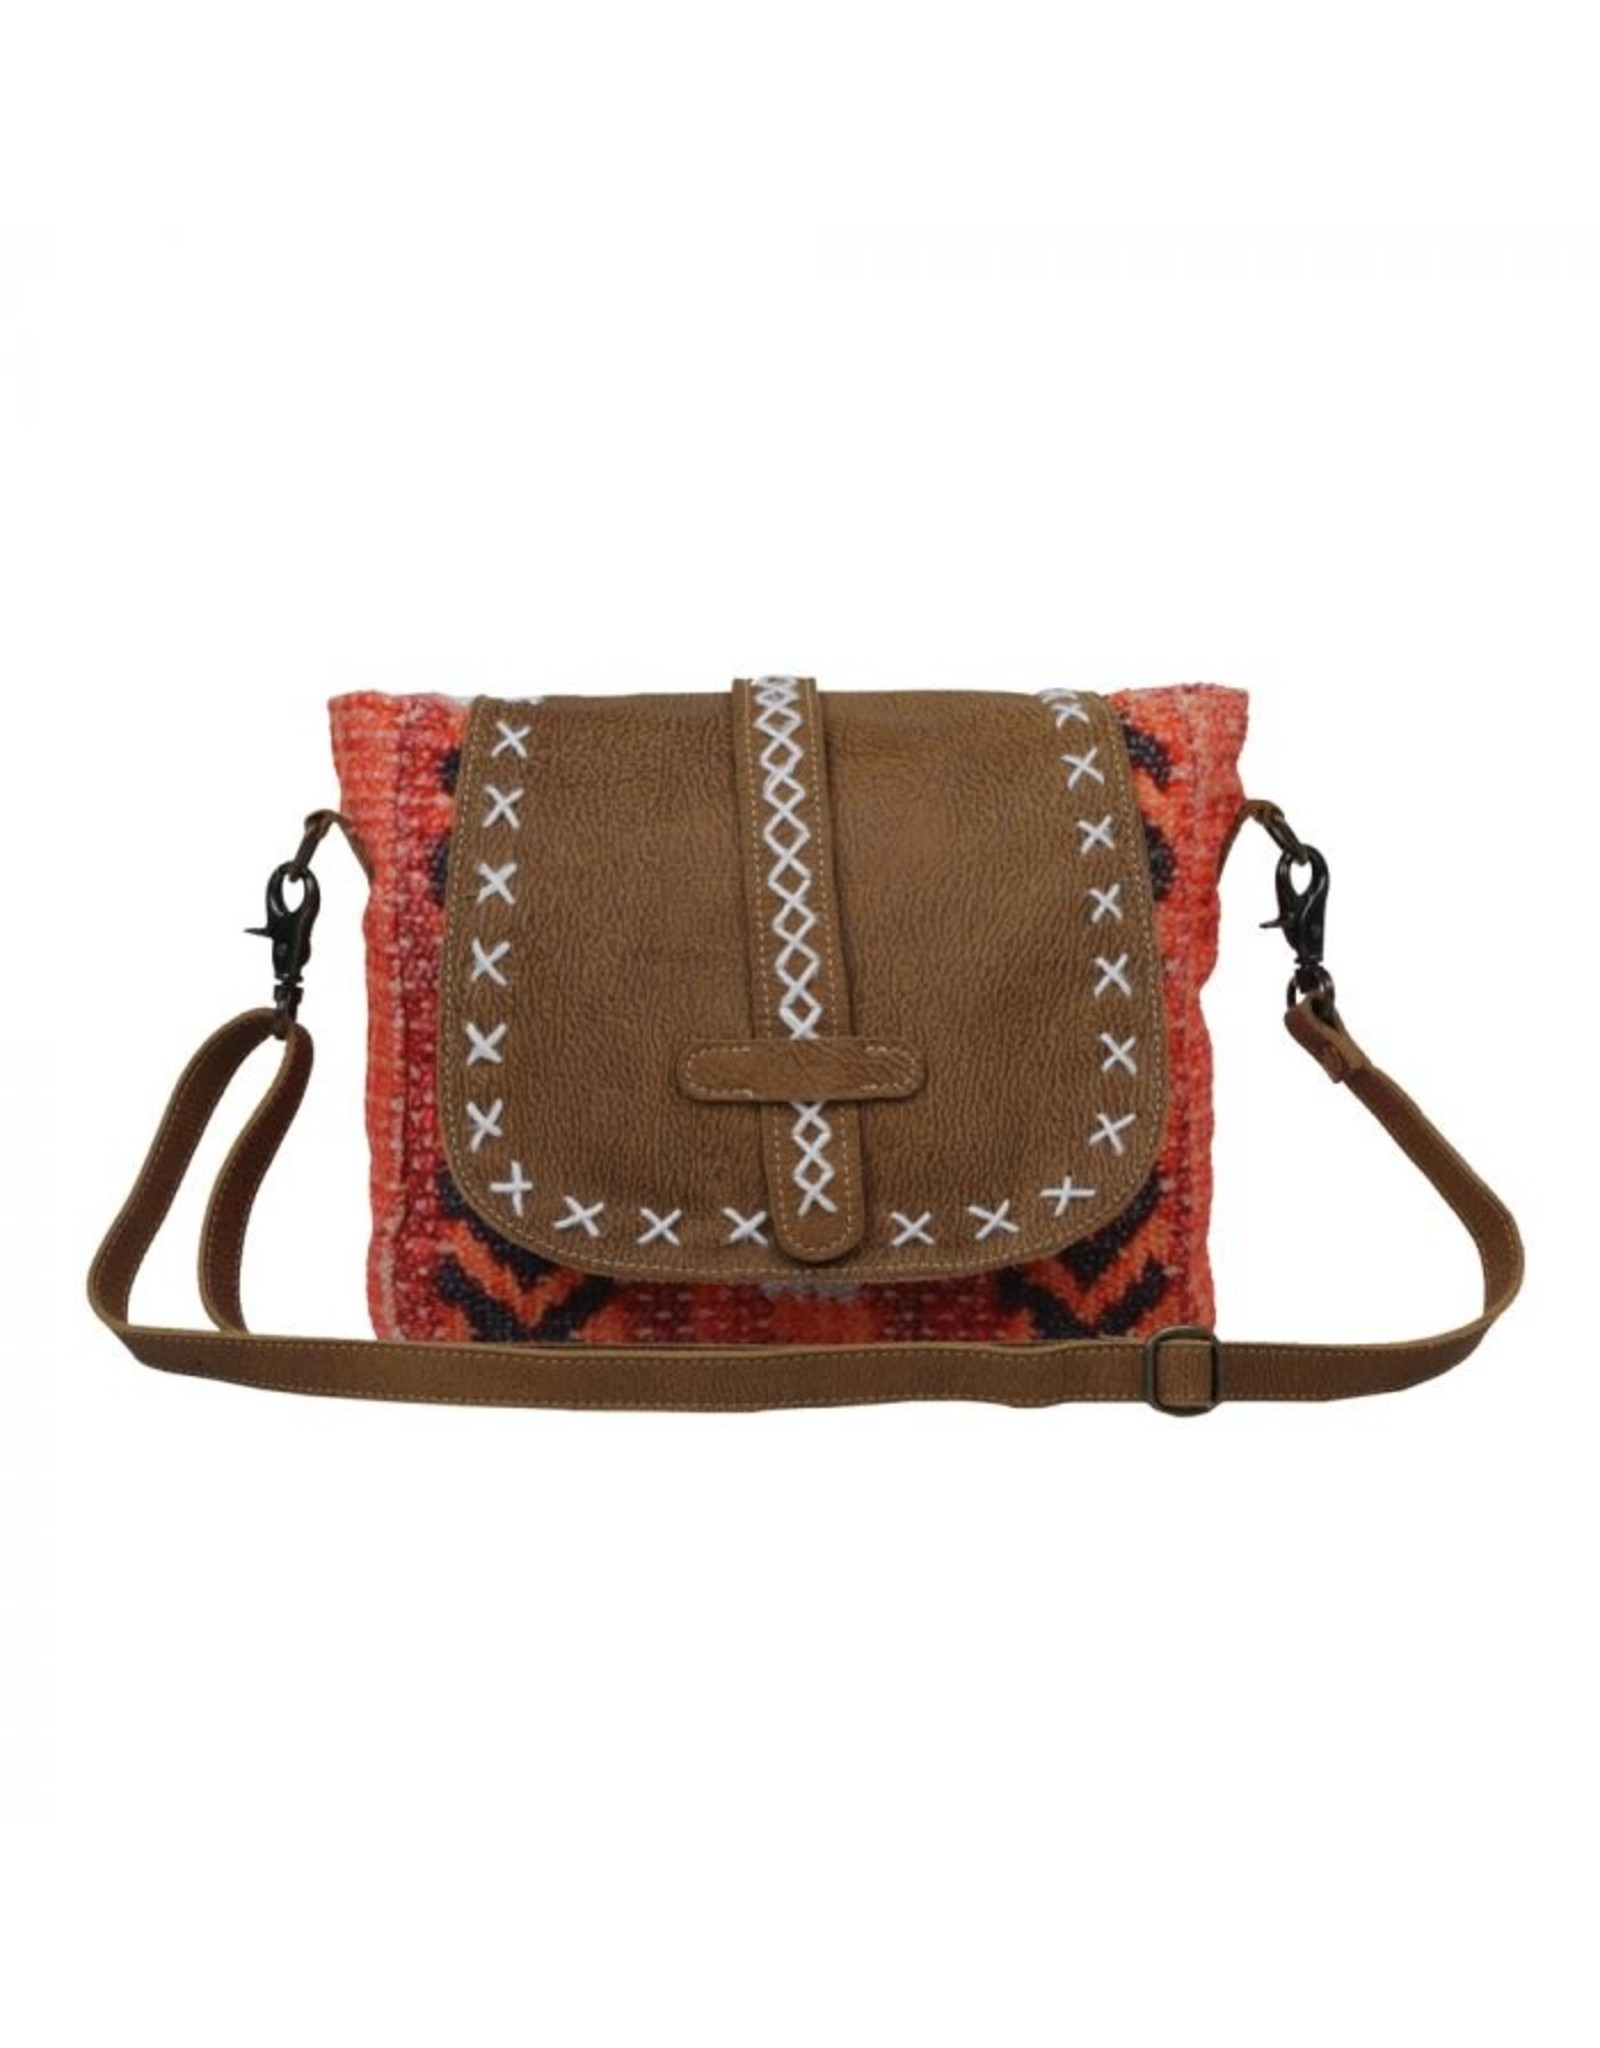 Myra Bag Poppin' Pink Shoulder Bag